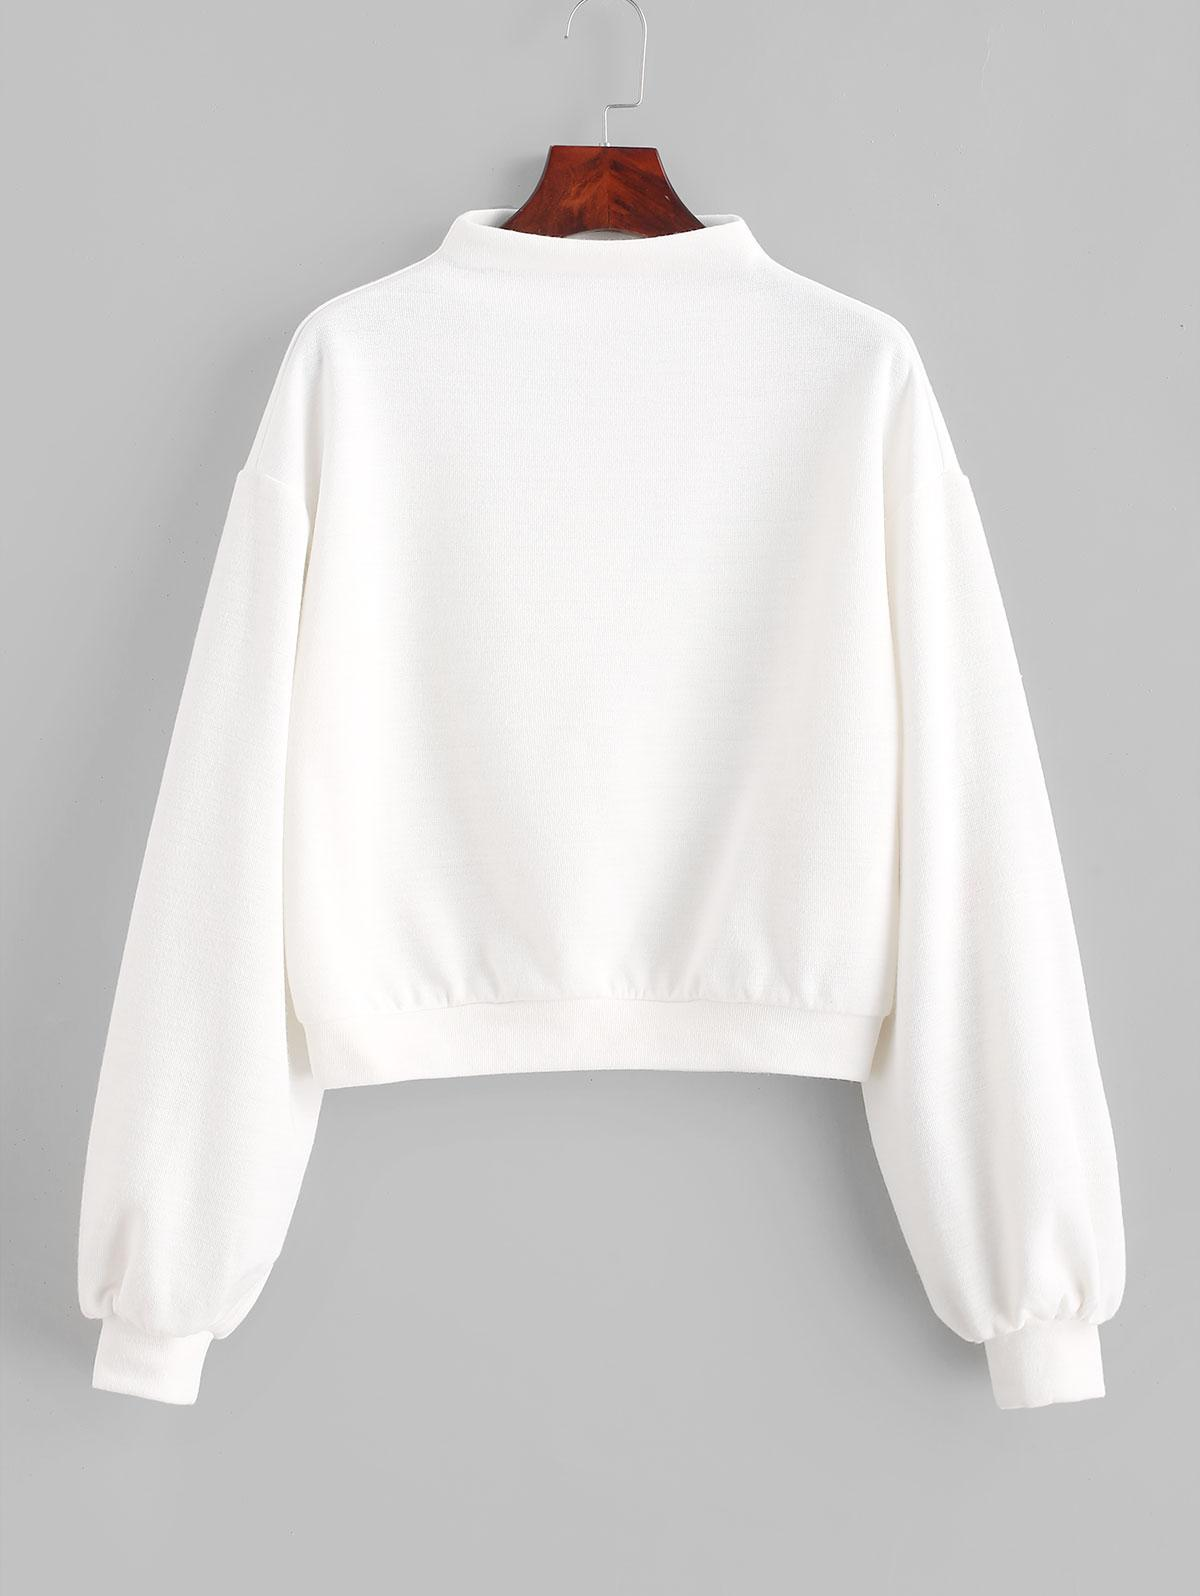 ZAFUL Pullover Mock Neck Plain Sweatshirt